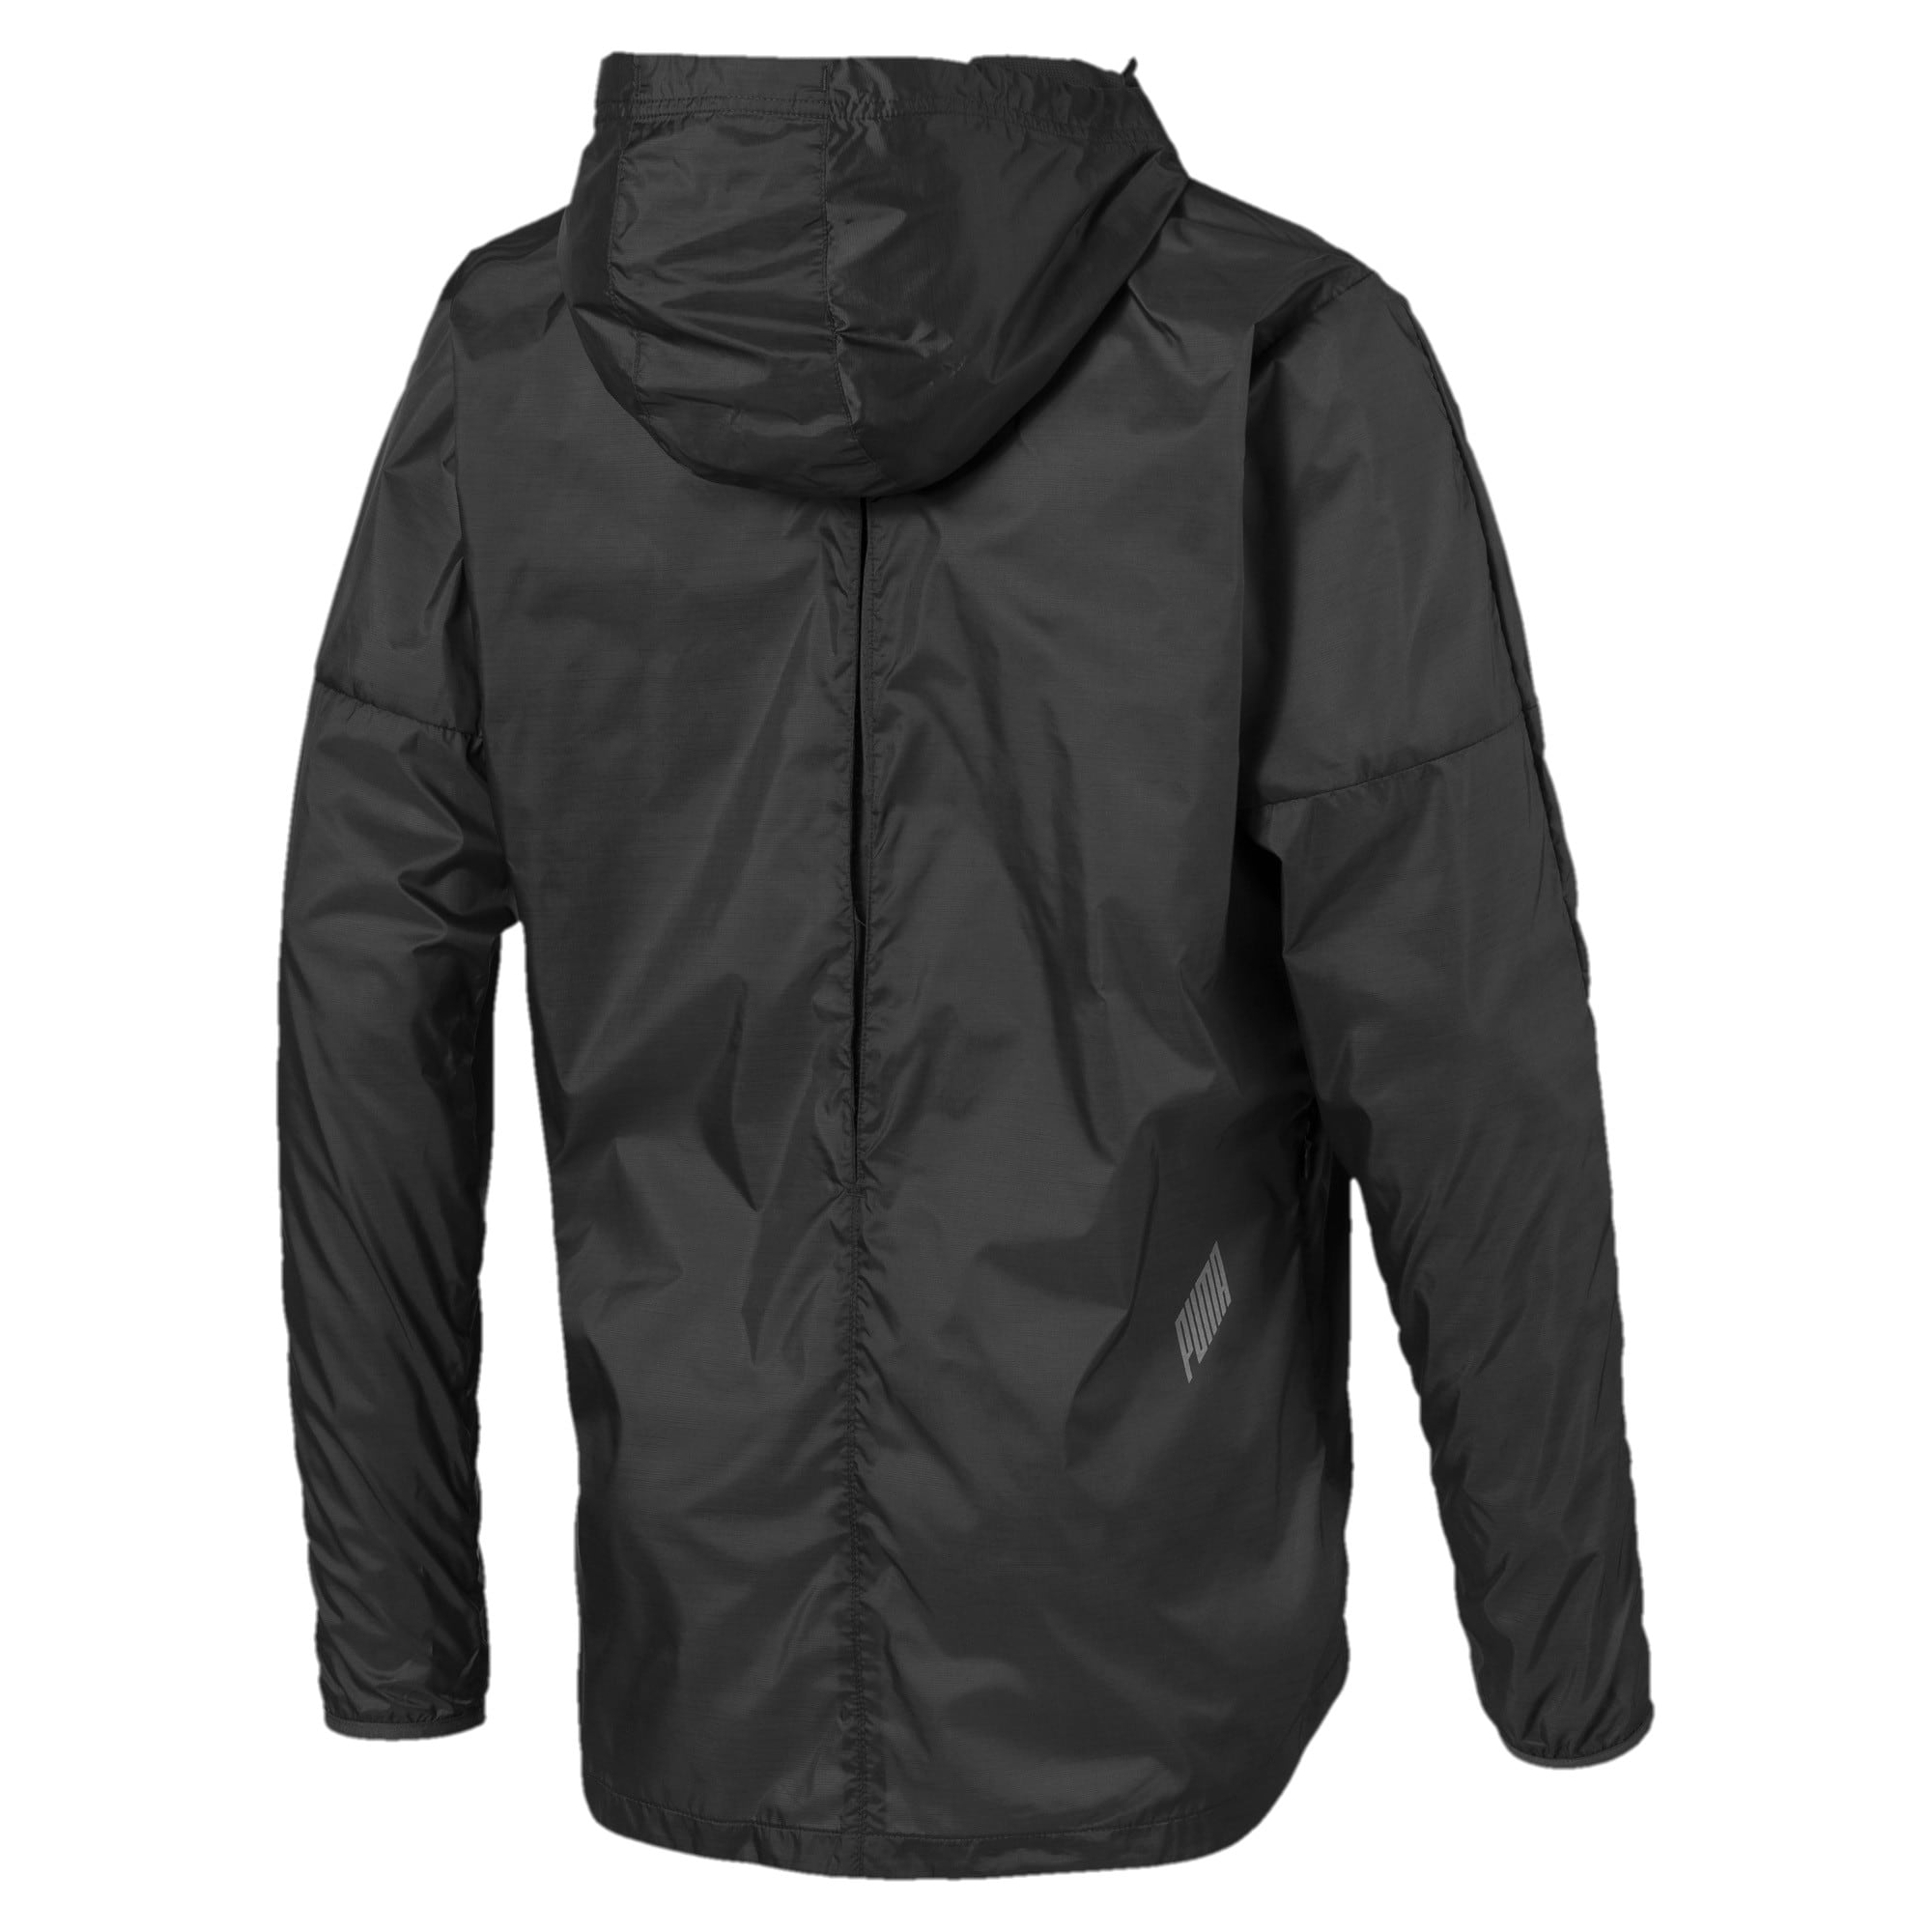 Thumbnail 6 of LastLap Herren Training Jacke, Asphalt Heather, medium